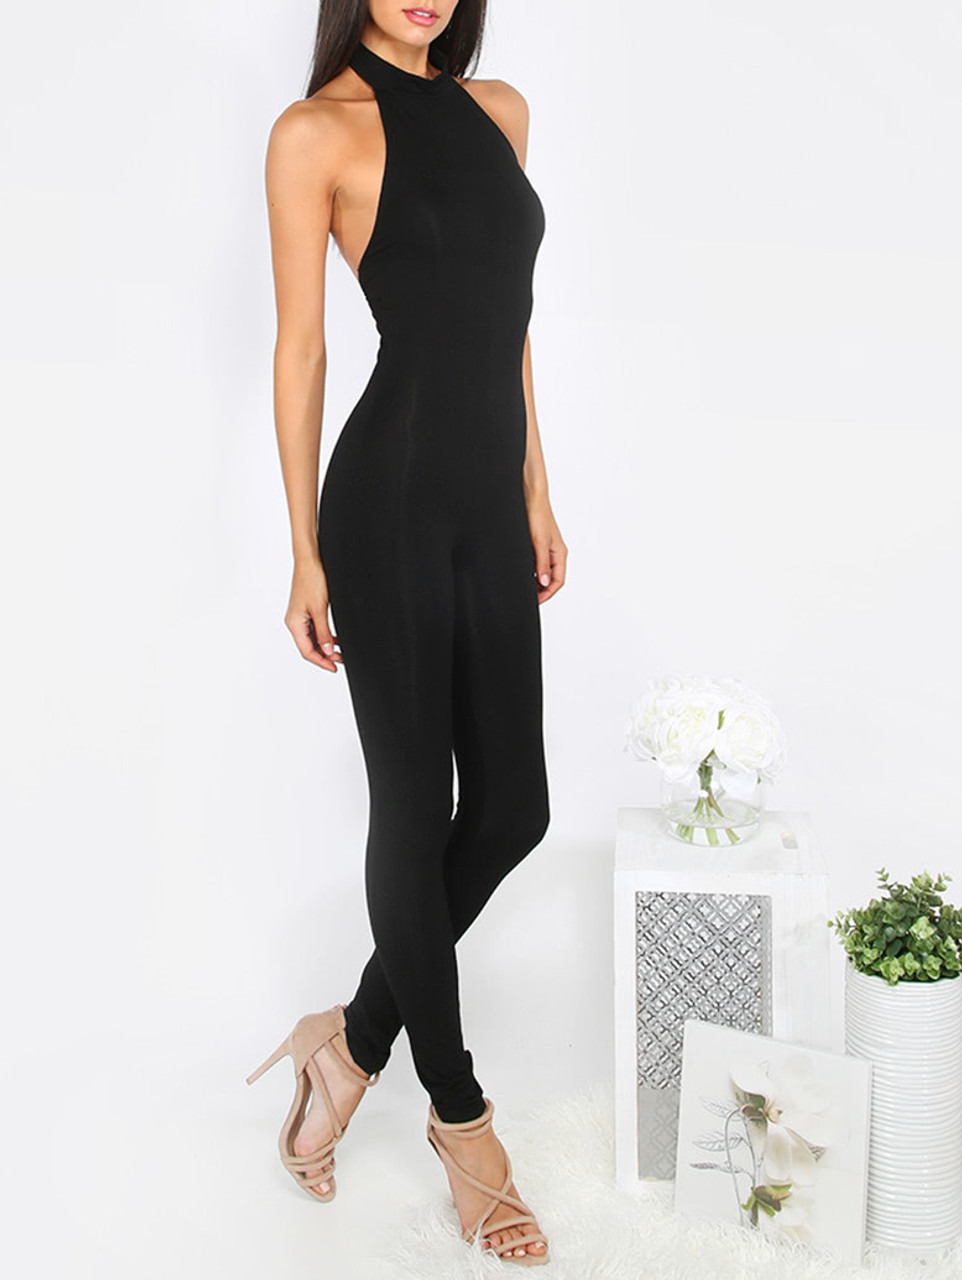 4746449a0bec Sexy Halter Backless Black Jumpsuit (10-1) - 5dollarfashions.com